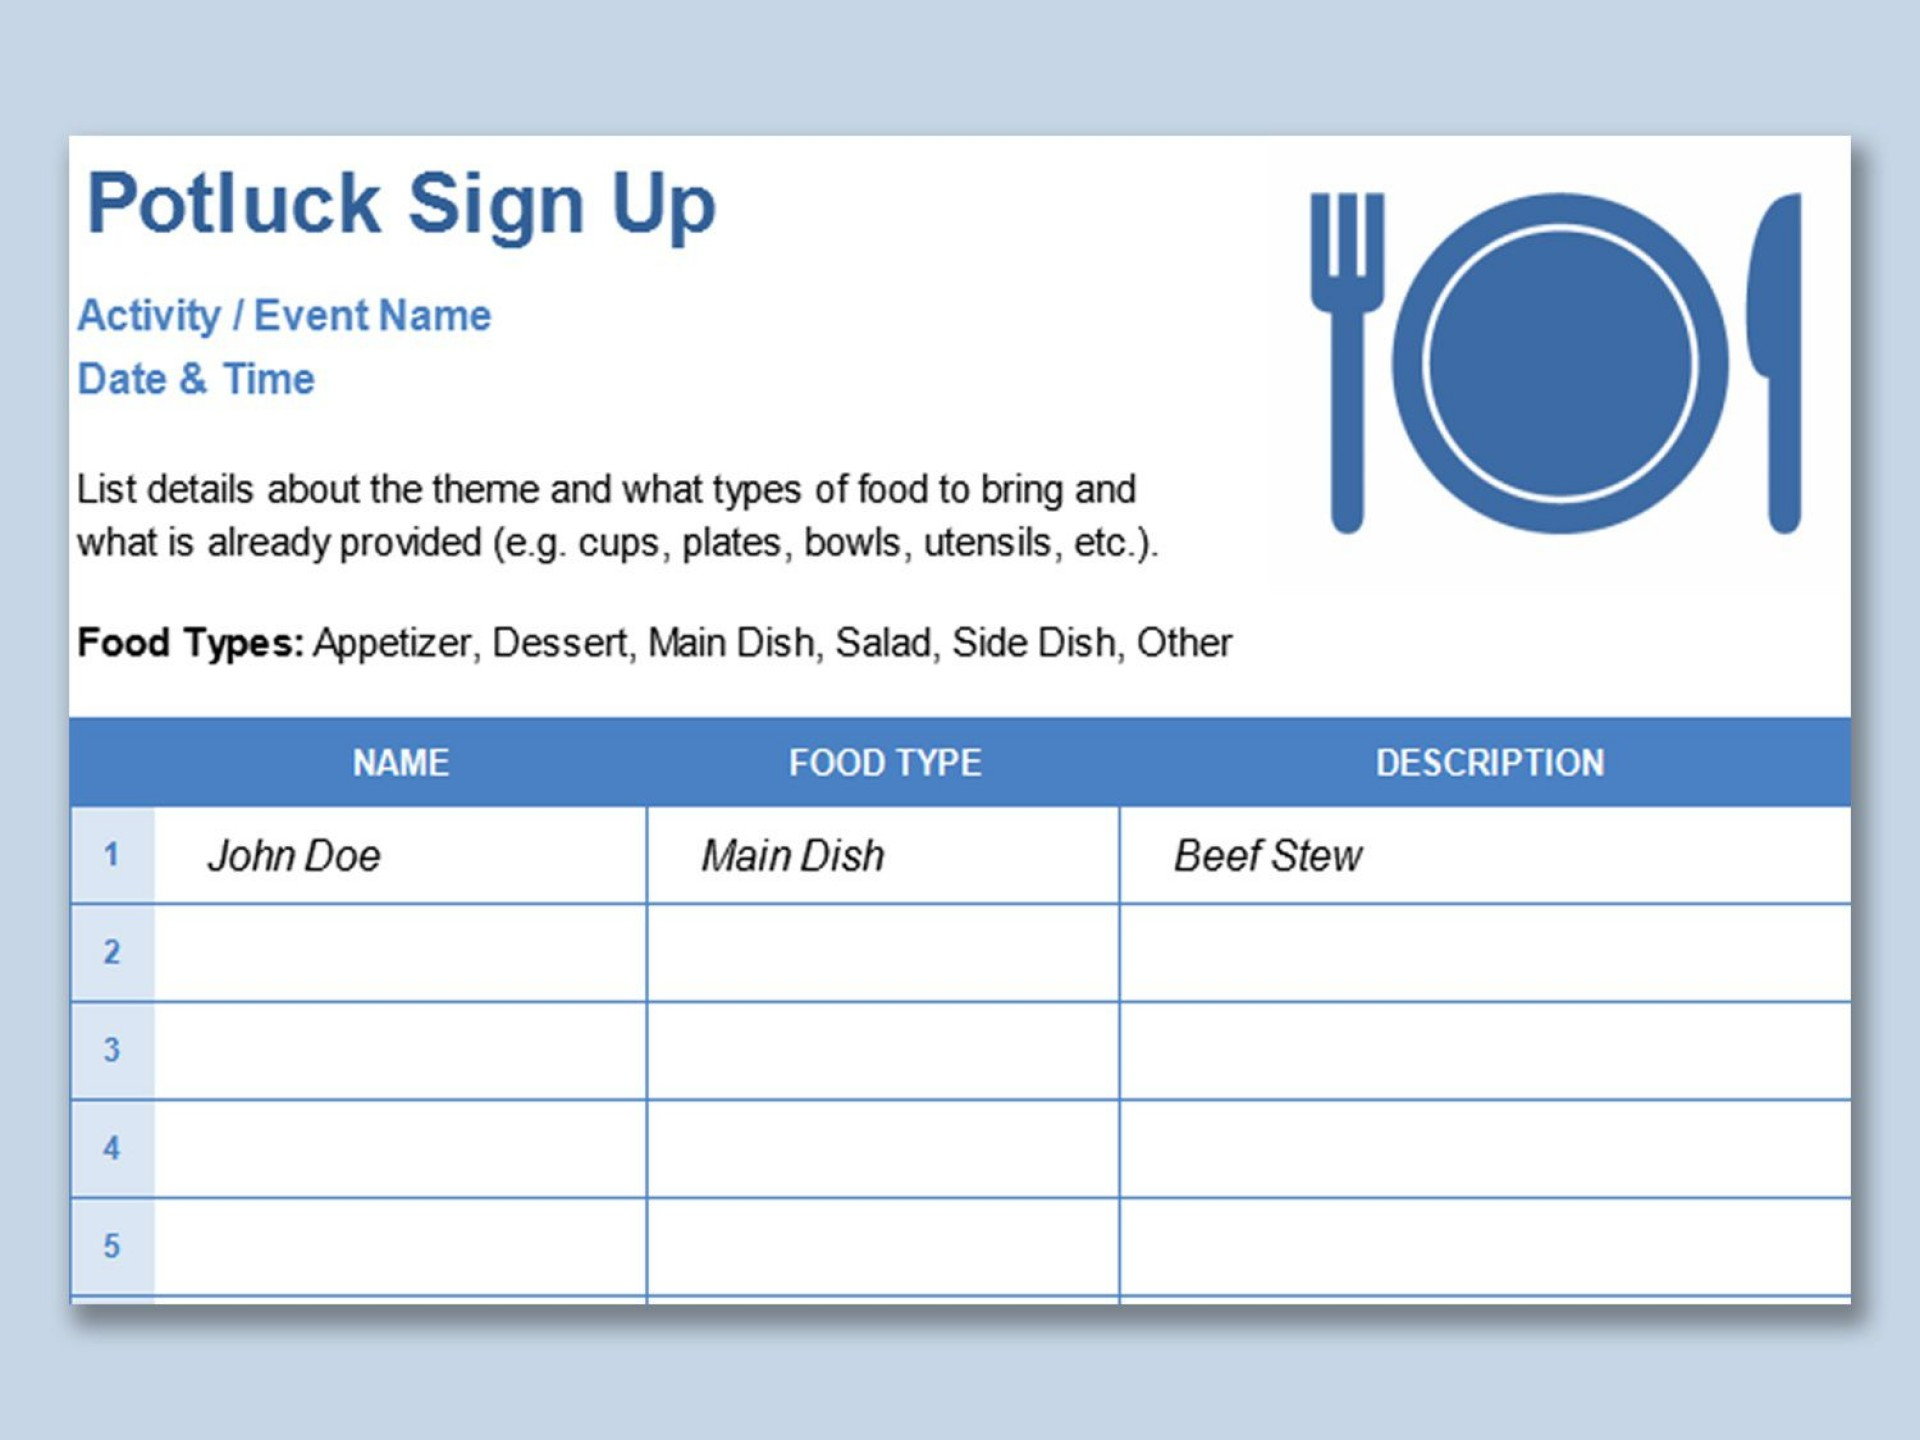 001 Simple Potluck Signup Sheet Template Word Image  Sign Up Free Holiday Printable1920